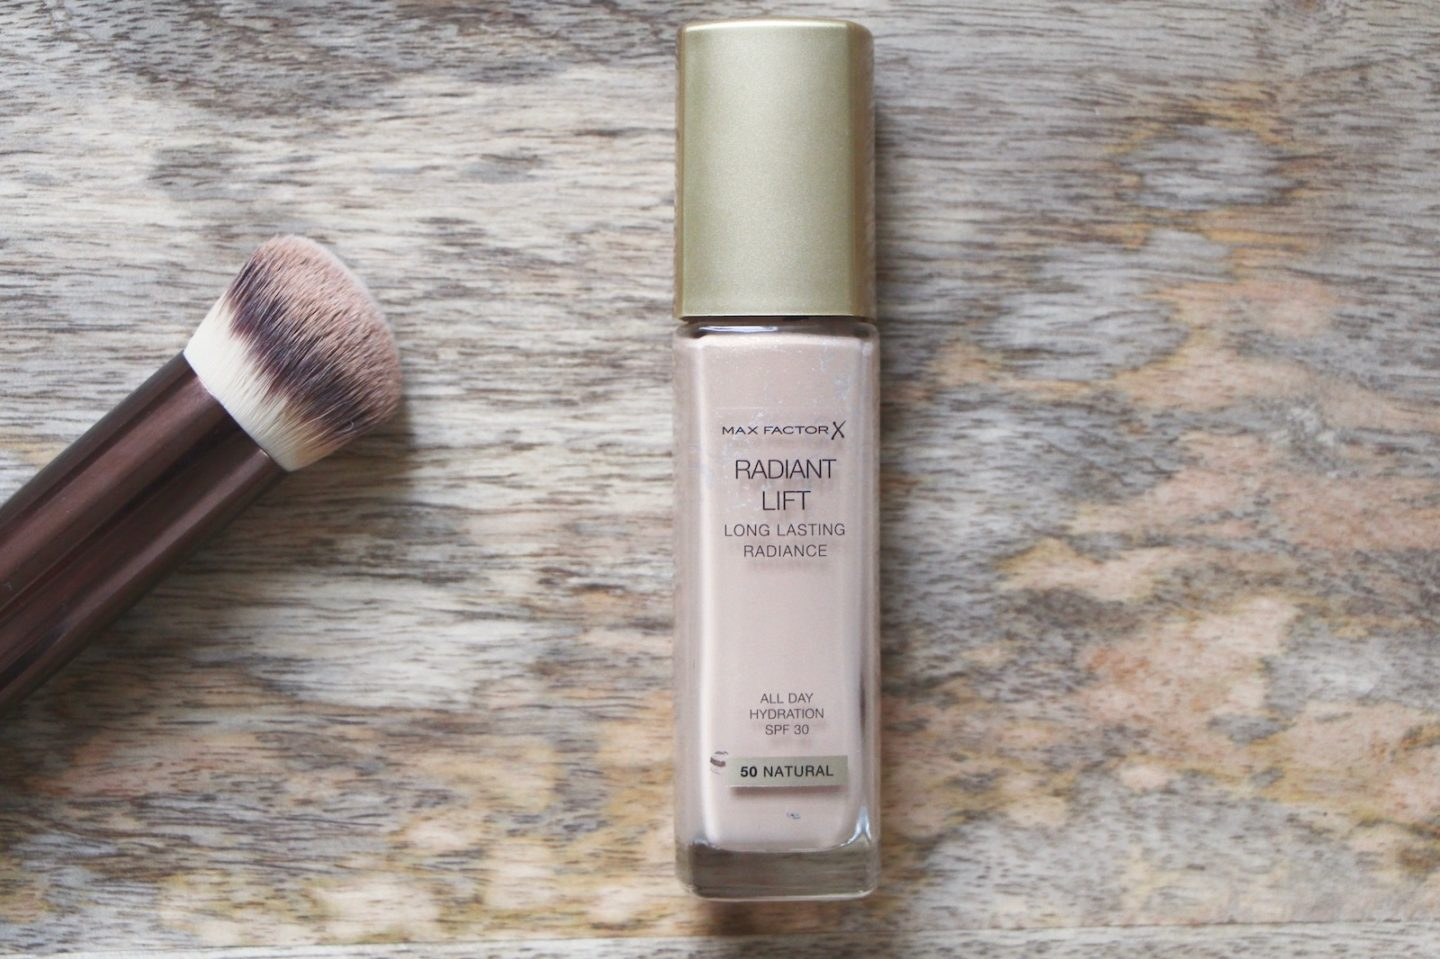 Max Factor Radiant Lift foundation review